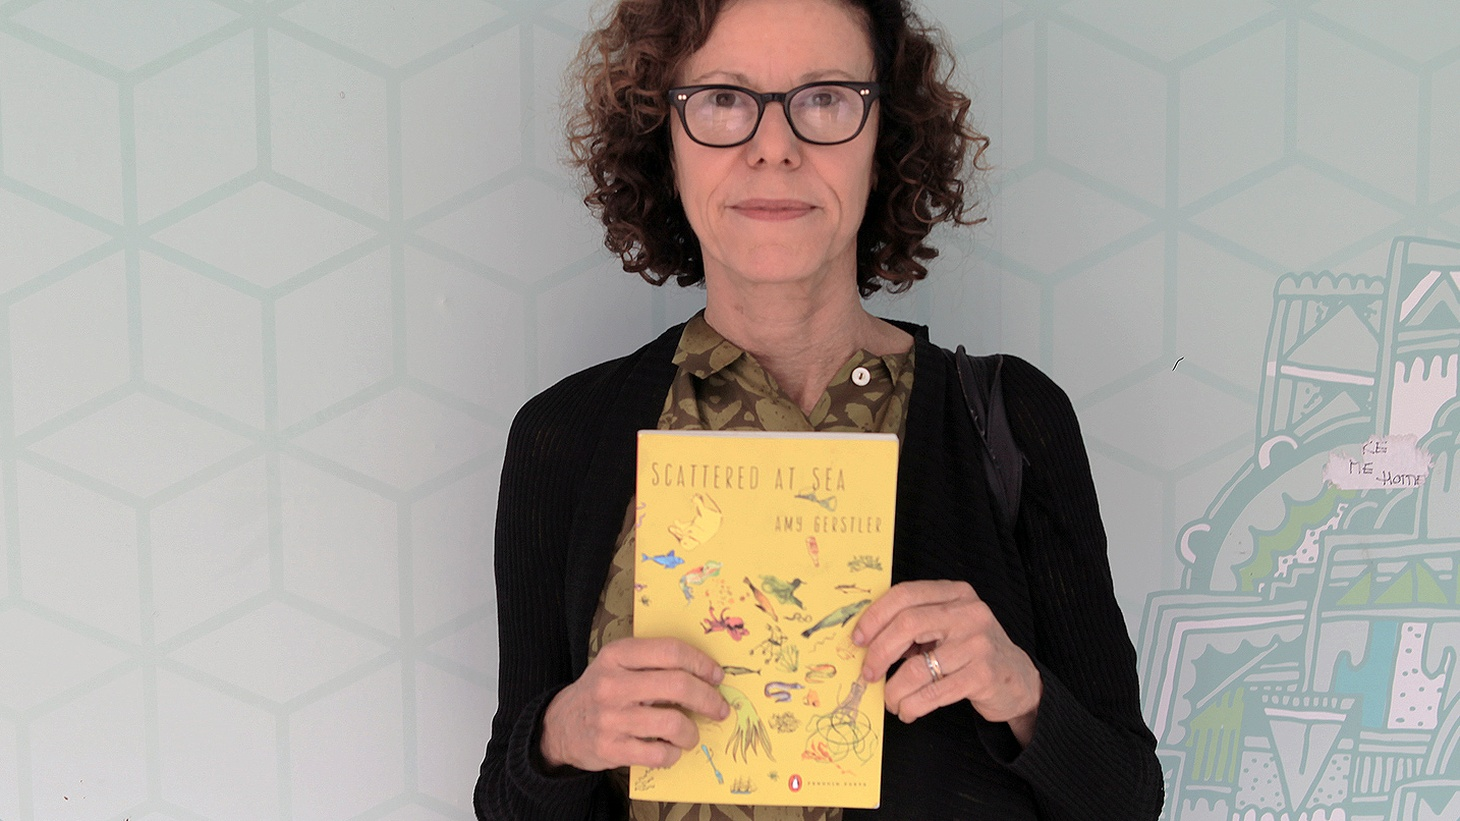 Amy Gerstler's new book of poems is an exploration of getting lost, the unknown, mortality and remembrance.